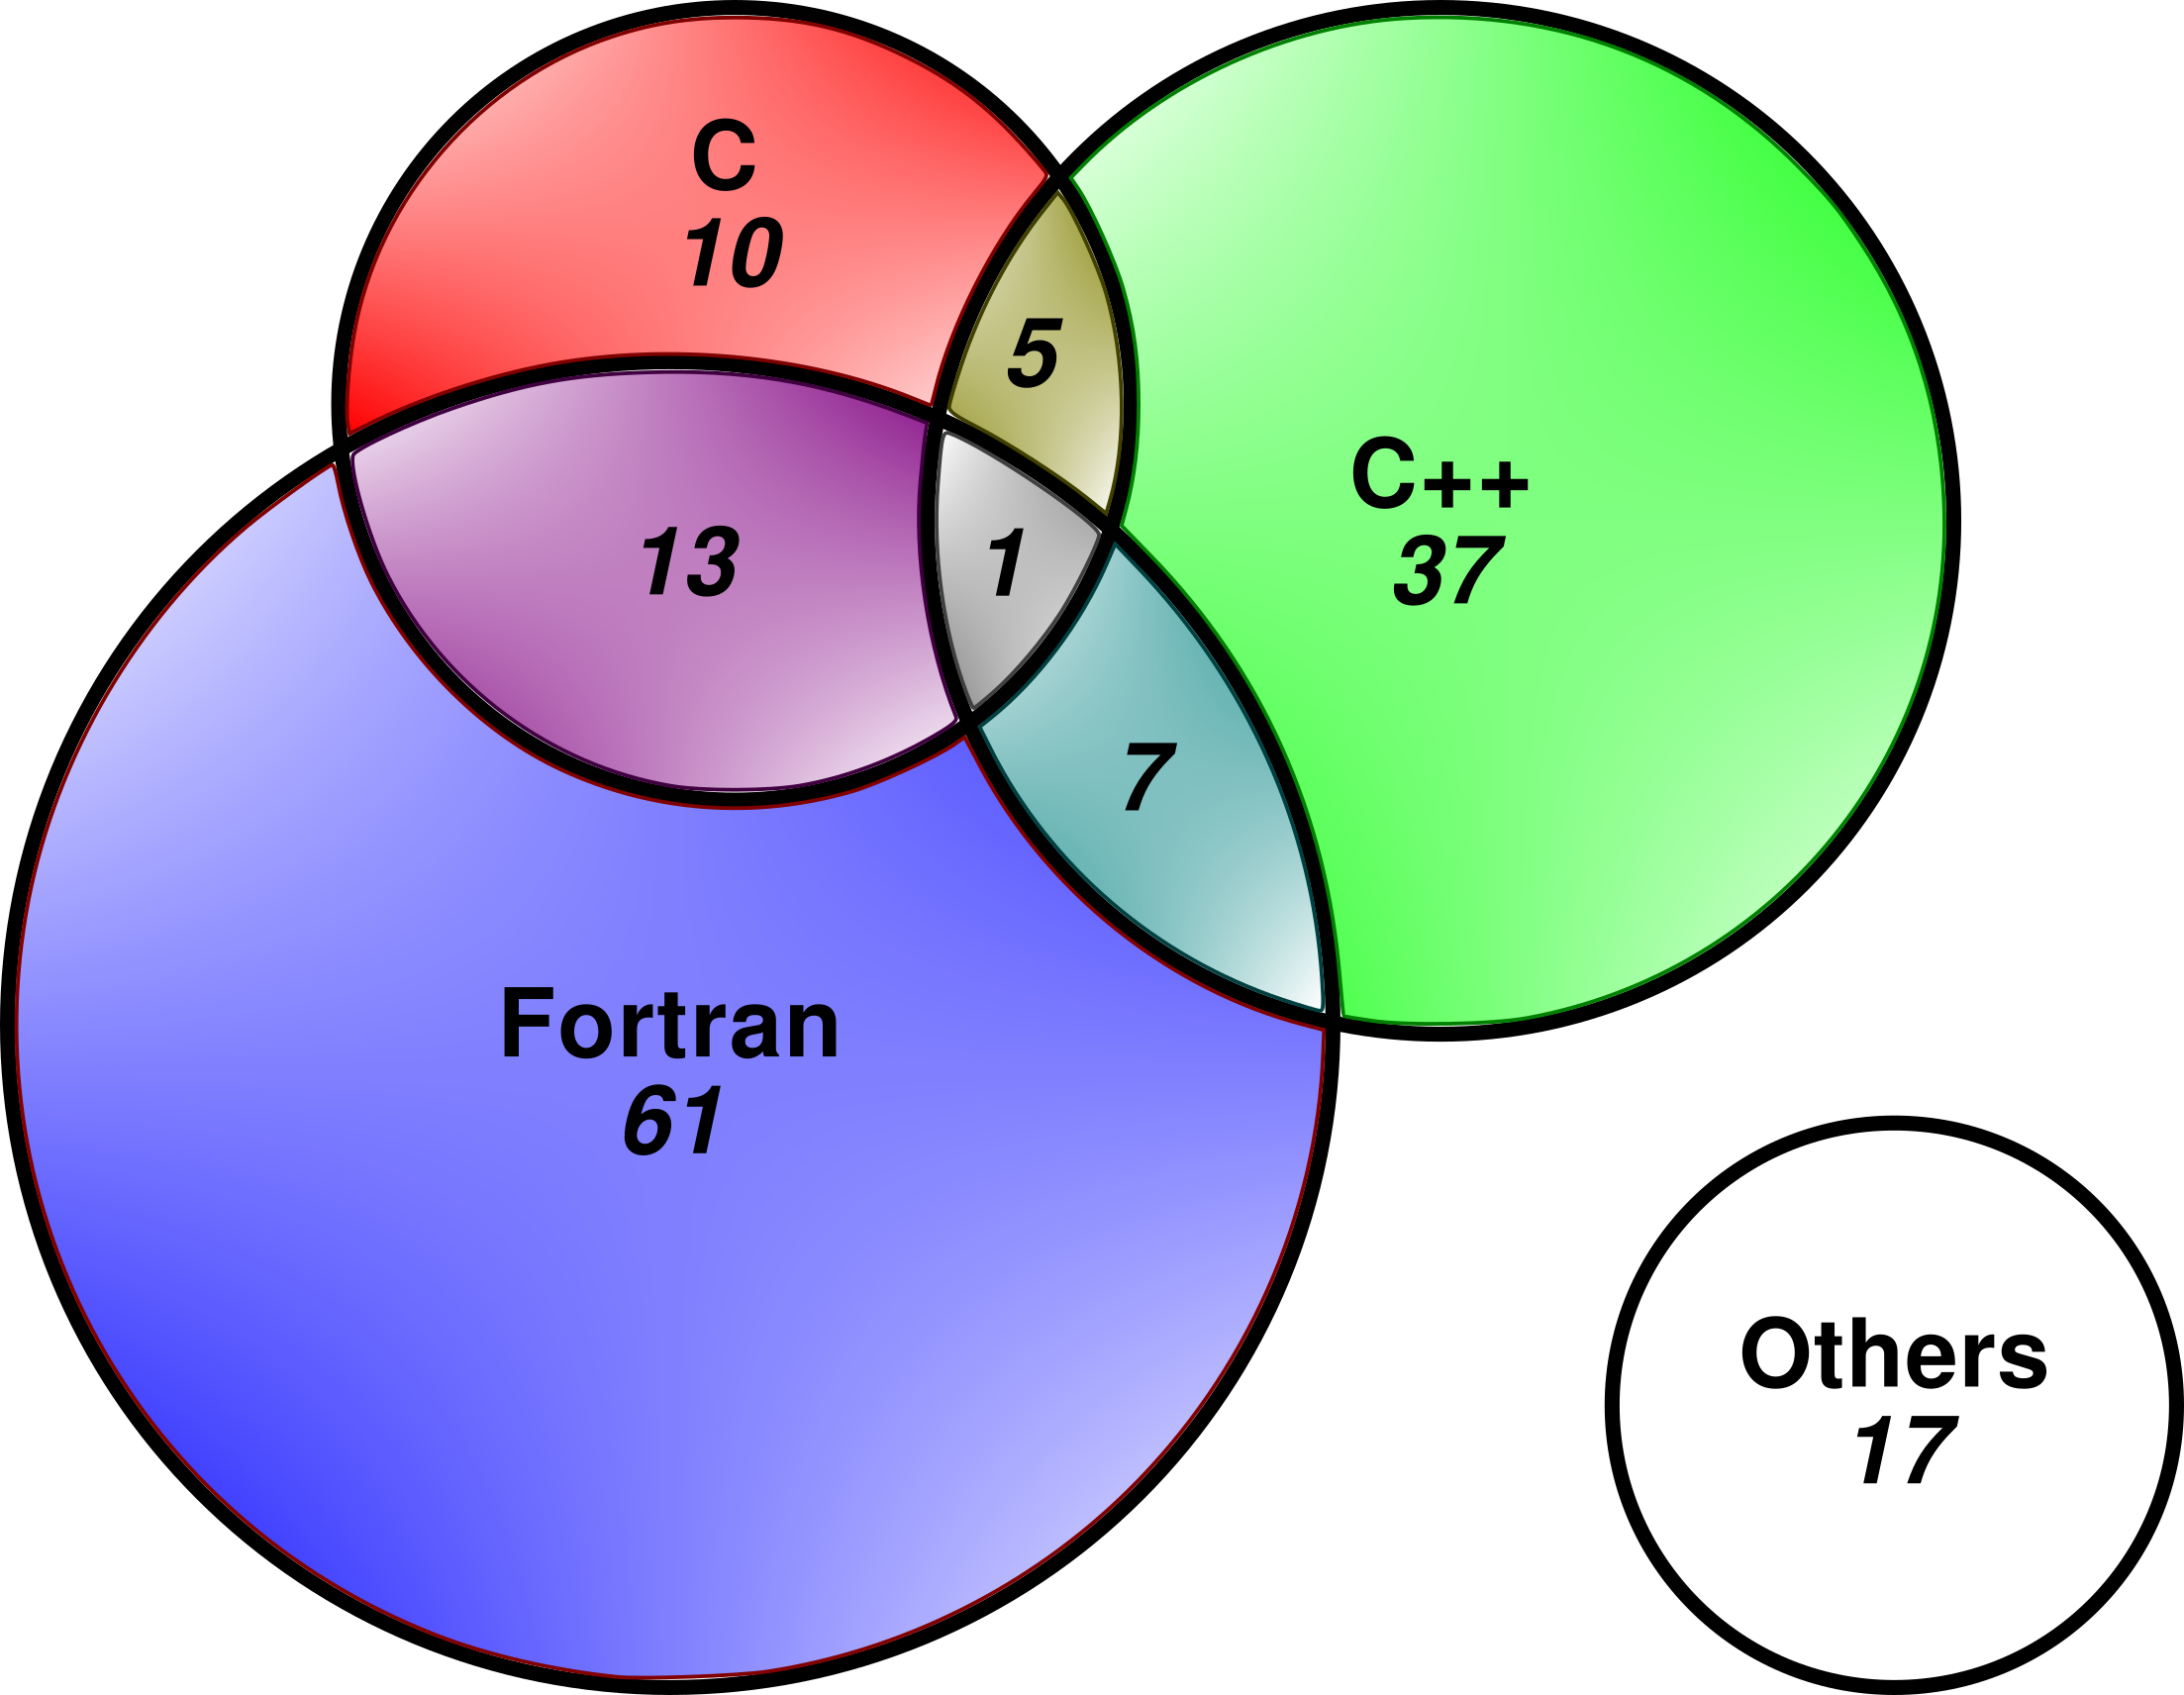 Not only fortran and mpi pops view of hpc software in europe the areas of the circles in the venn diagram are proportional to the number of studies they contain the others category makes up about 10 17 of 151 pooptronica Images